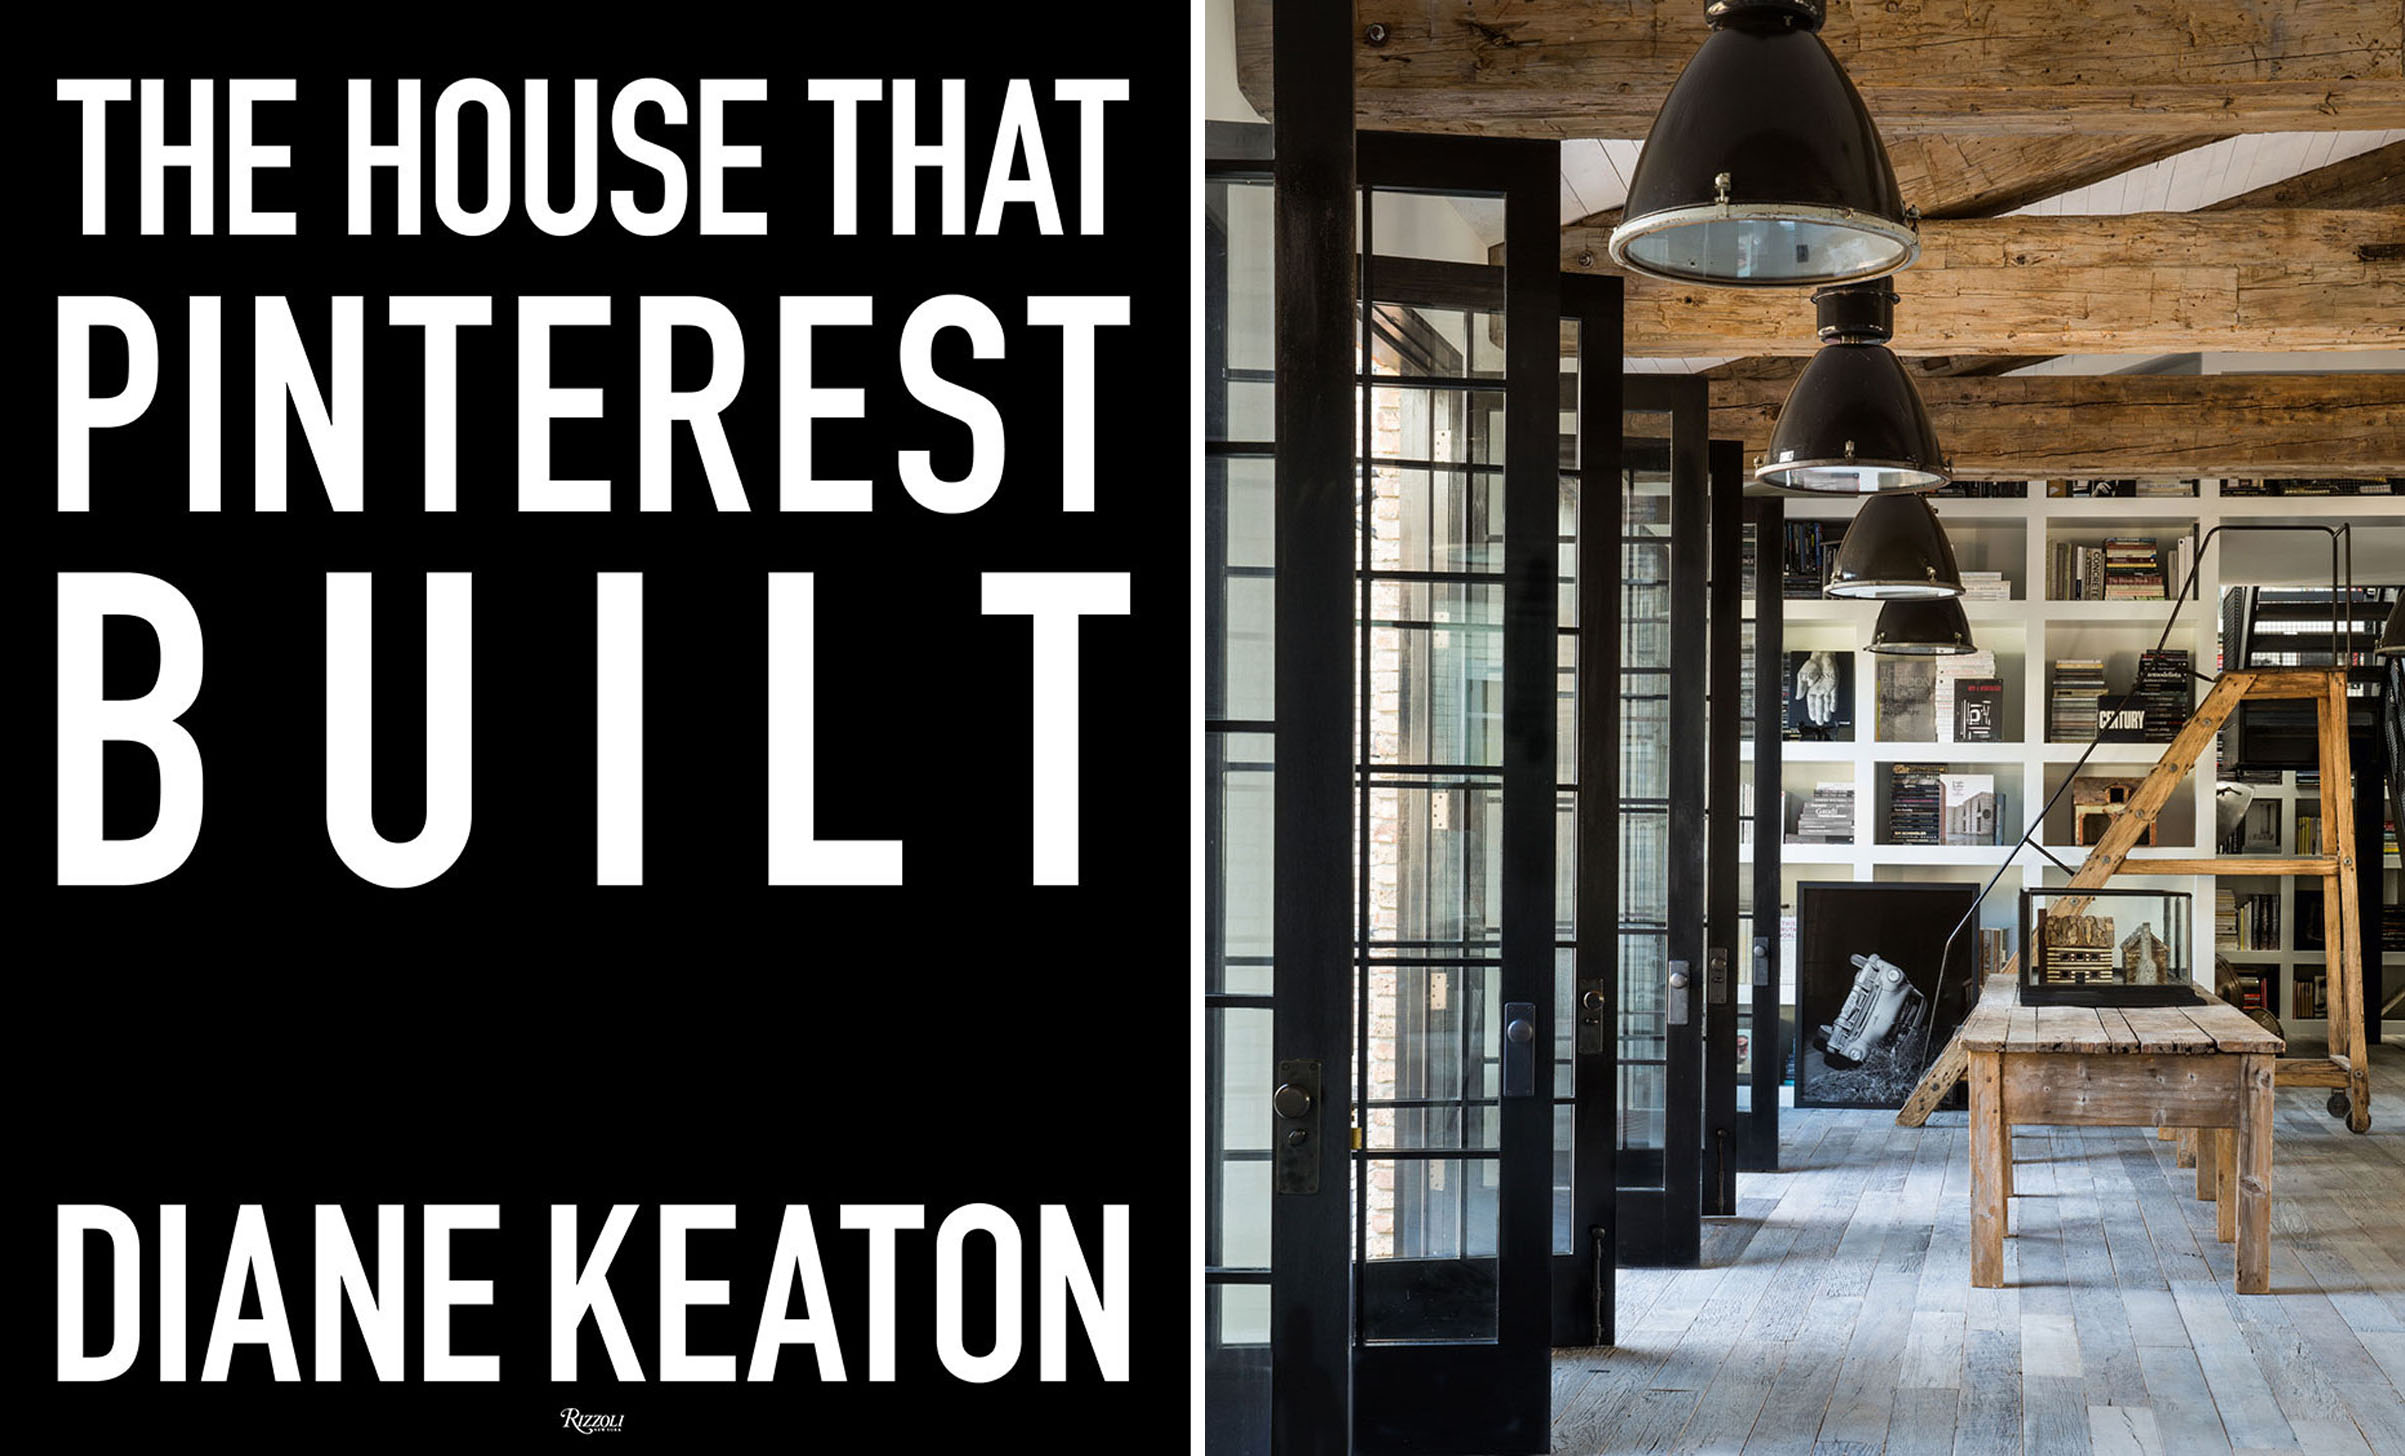 Pinterest Home Design Lover Diane Keaton Is One Of Us She Looks For Home Inspirations